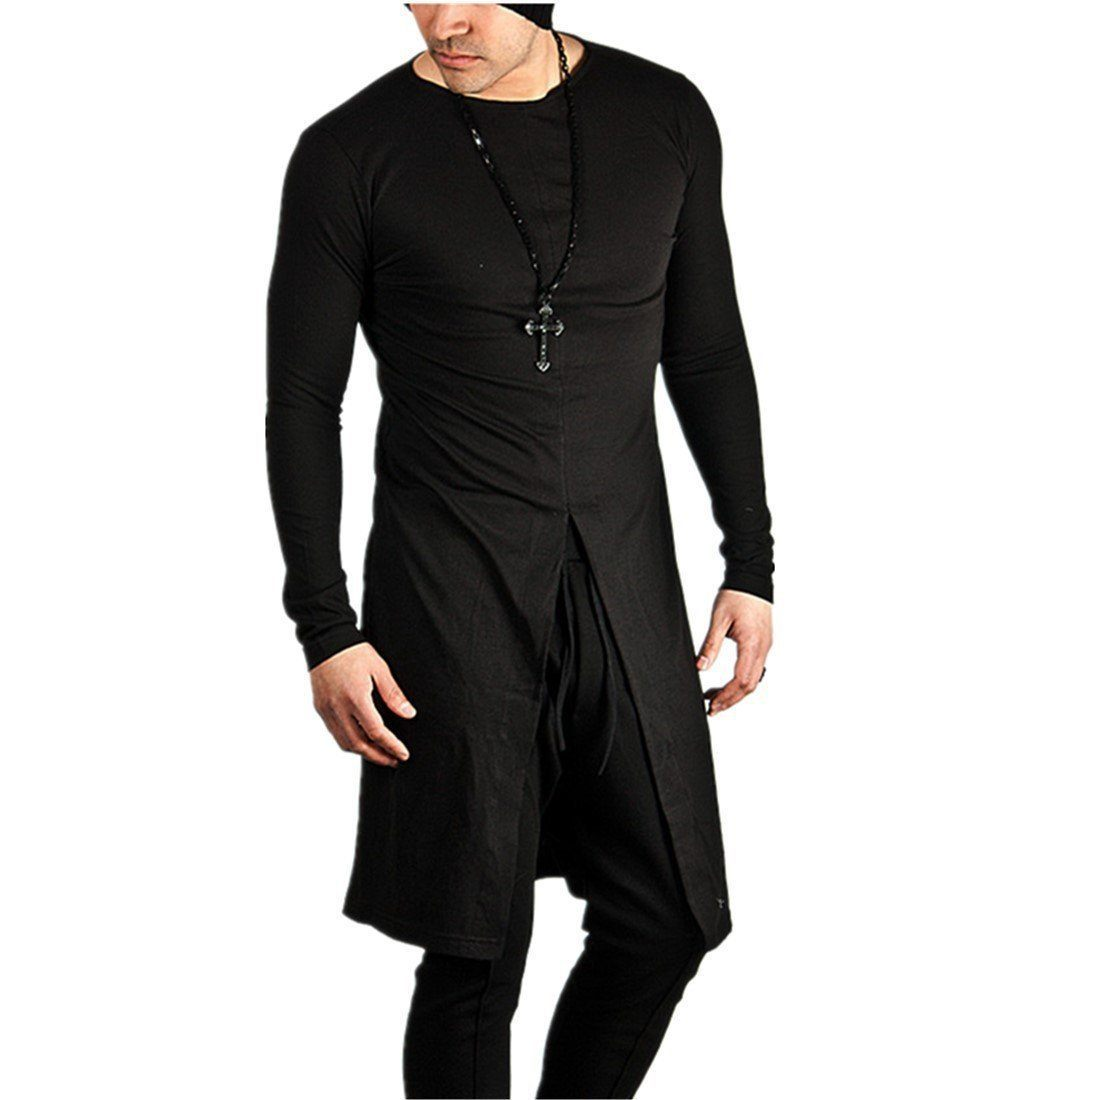 Extra long Rock Fashion Sweatshirt for Men Side Zipper in Gothic Style - HARD'N'HEAVY